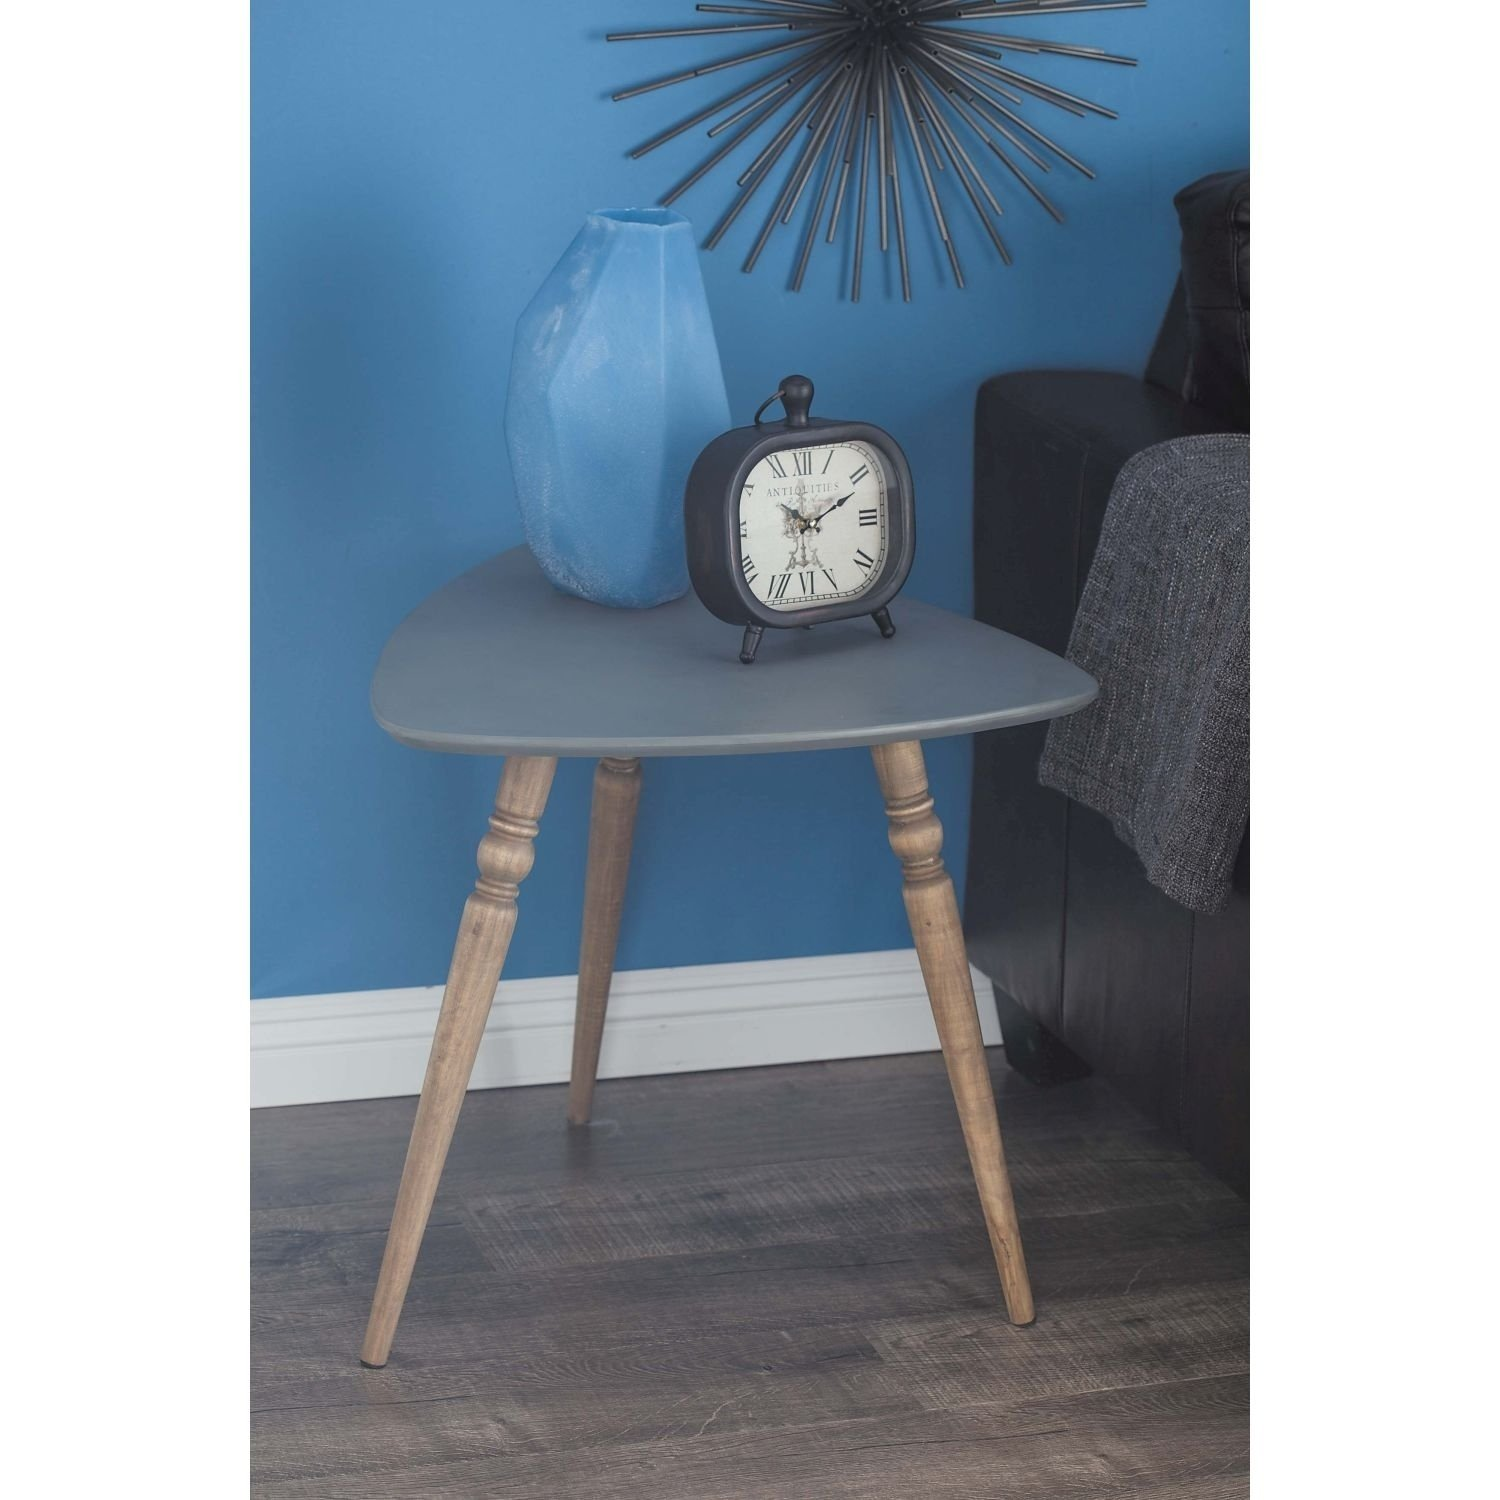 studio wood accent table inches wide high end tables free shipping today west elm bedroom ideas pottery barn bar battery run lamps mosaic steel mesh patio furniture chair mirrored